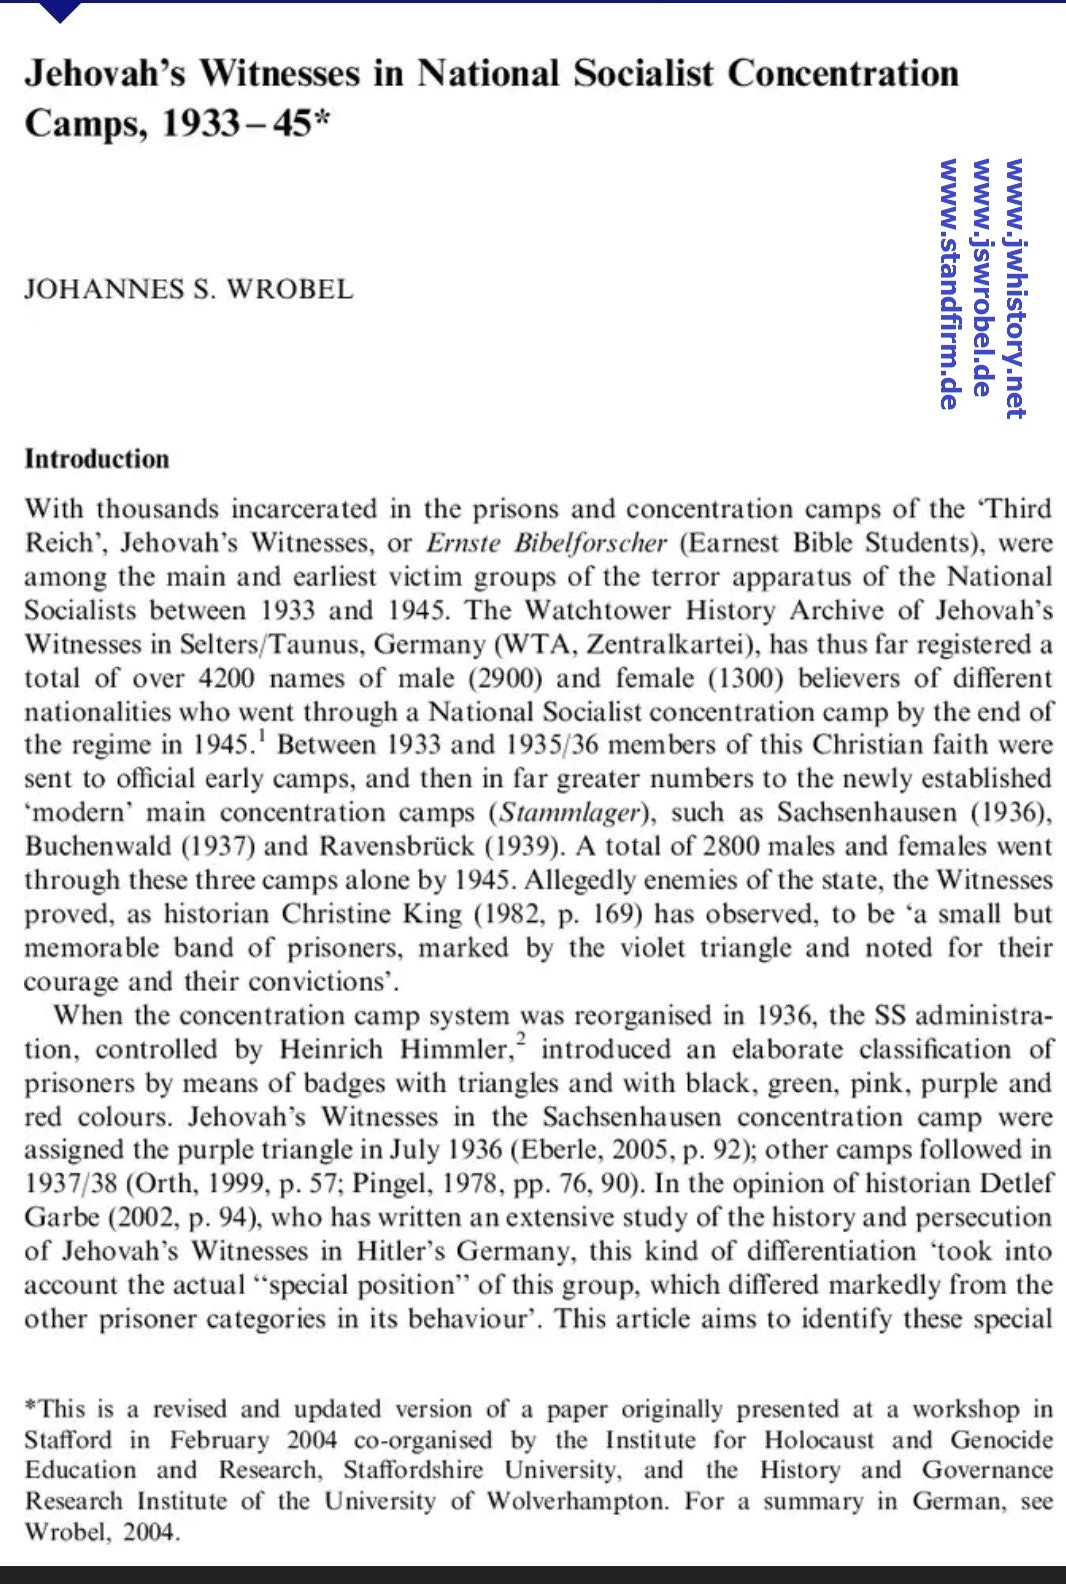 Religion, State & Society, Vol. 34, No. 2, June 2006